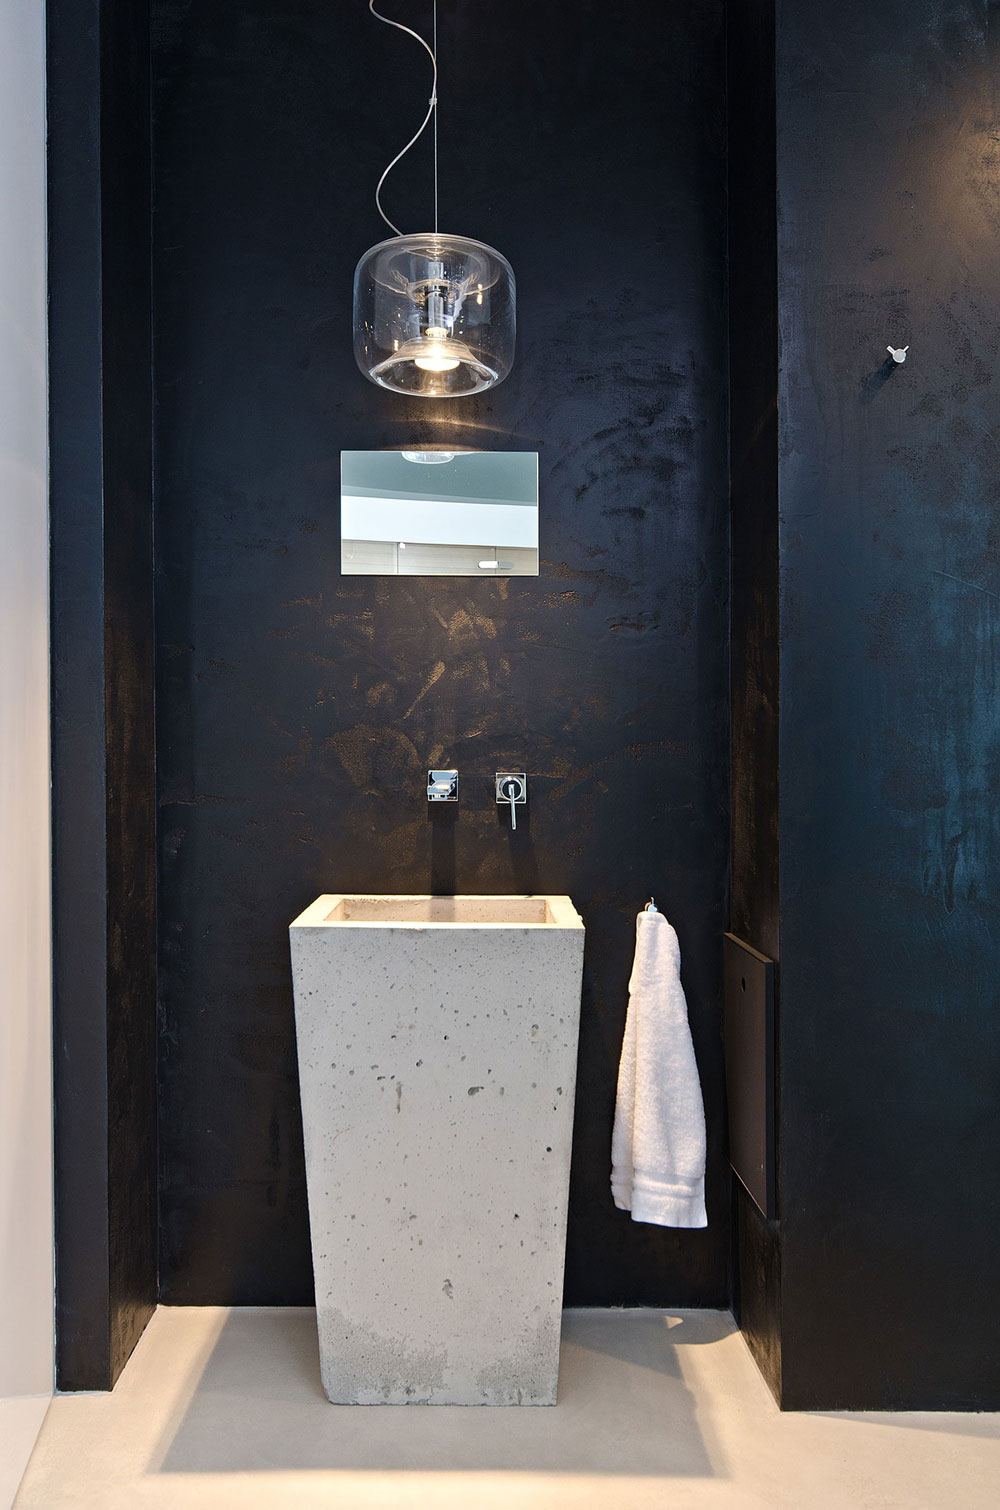 Dark Wall, Concrete Sink, Lighting, Concrete Interior Design in Osice, Czech Republic